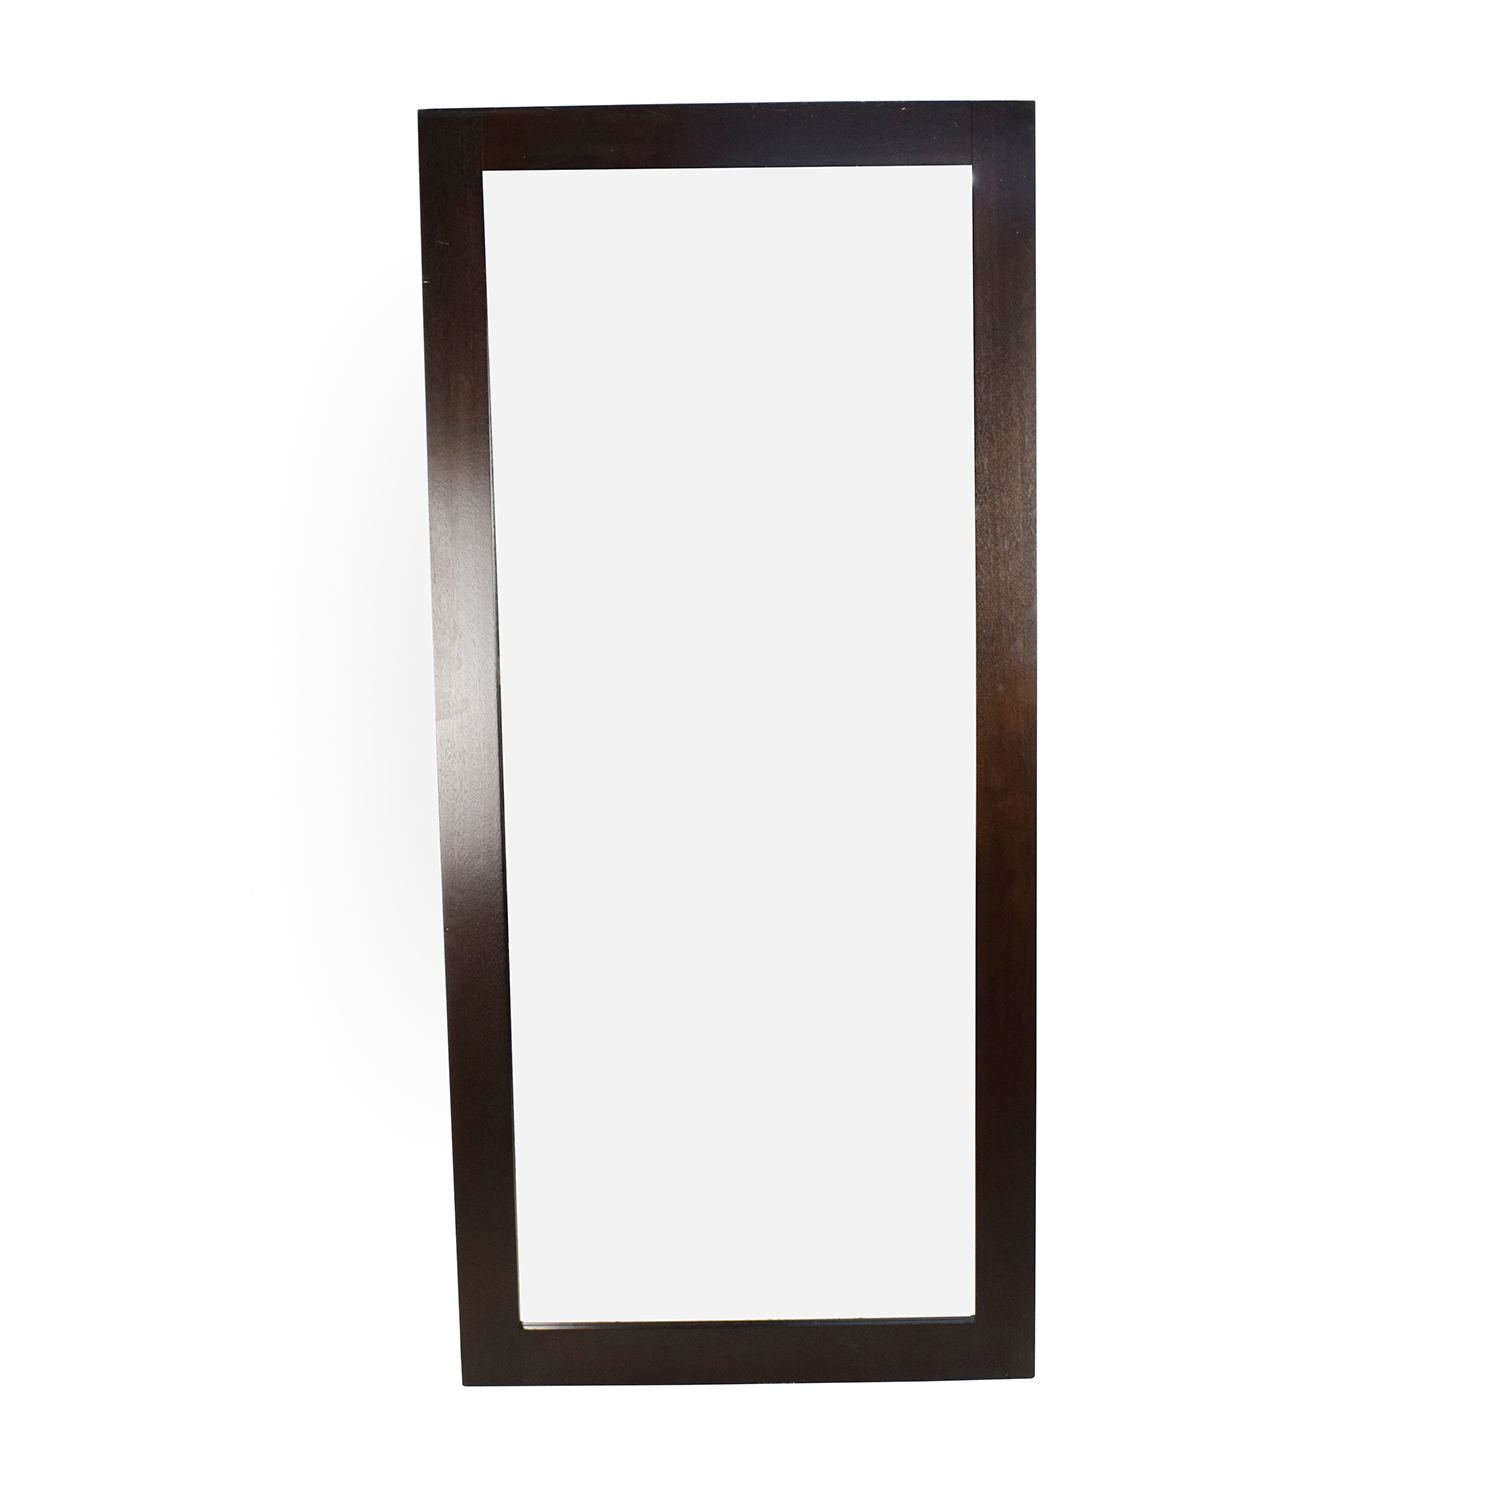 44 off wood framed tall standing mirror decor for Tall framed mirror